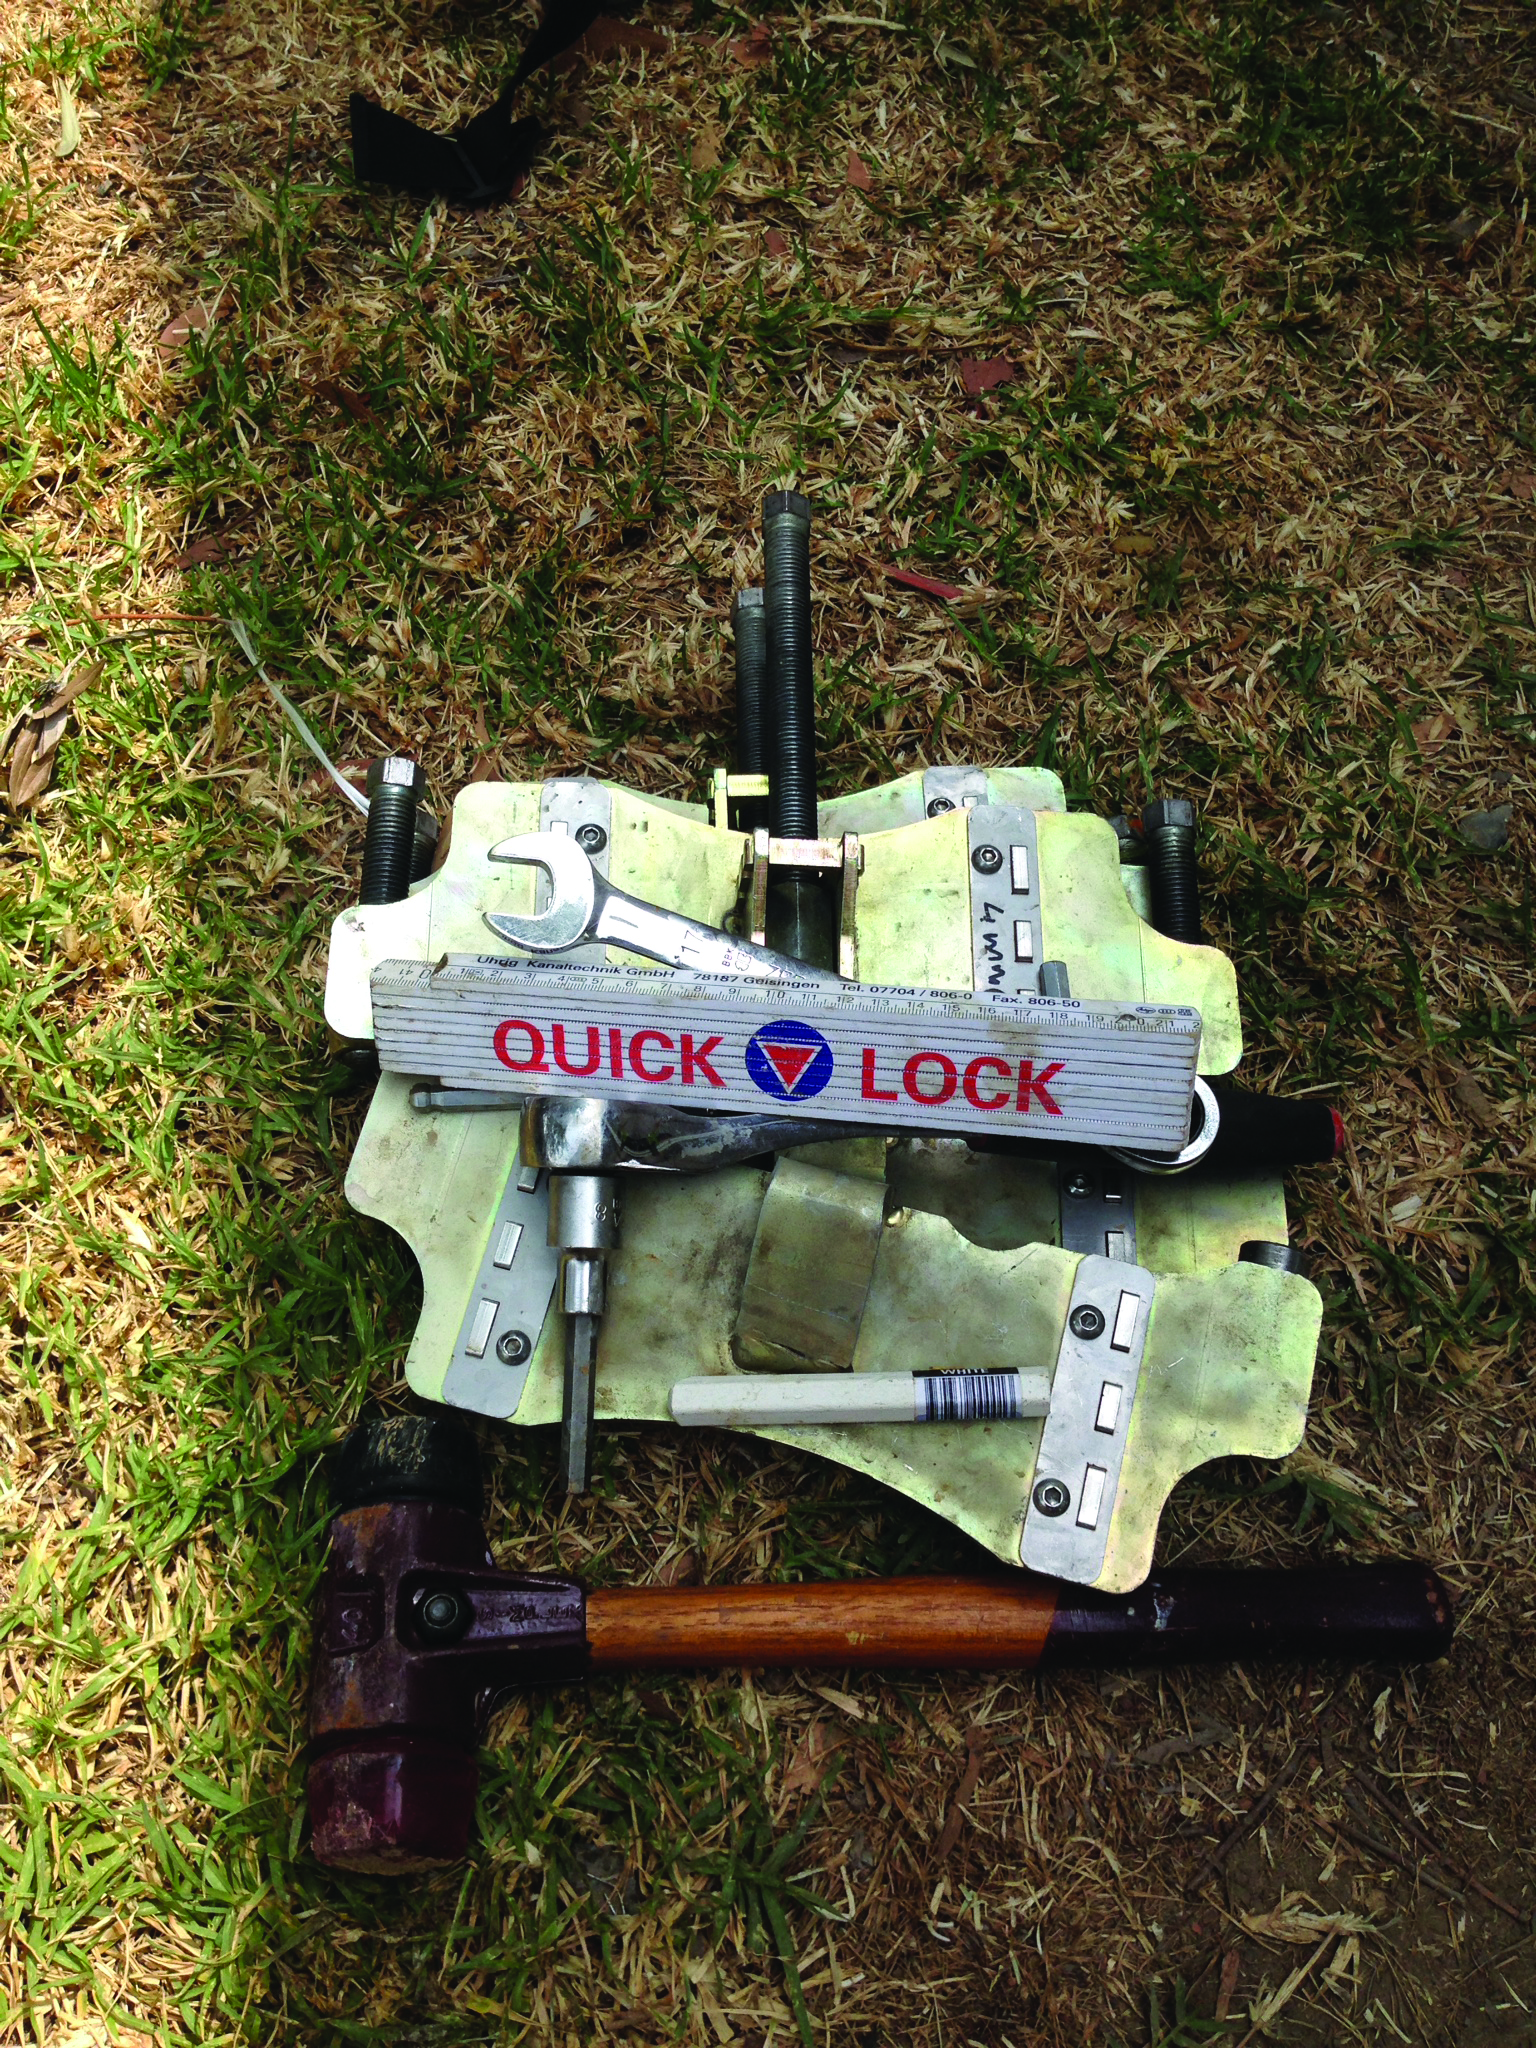 QUICKLOCK BIG Preparation